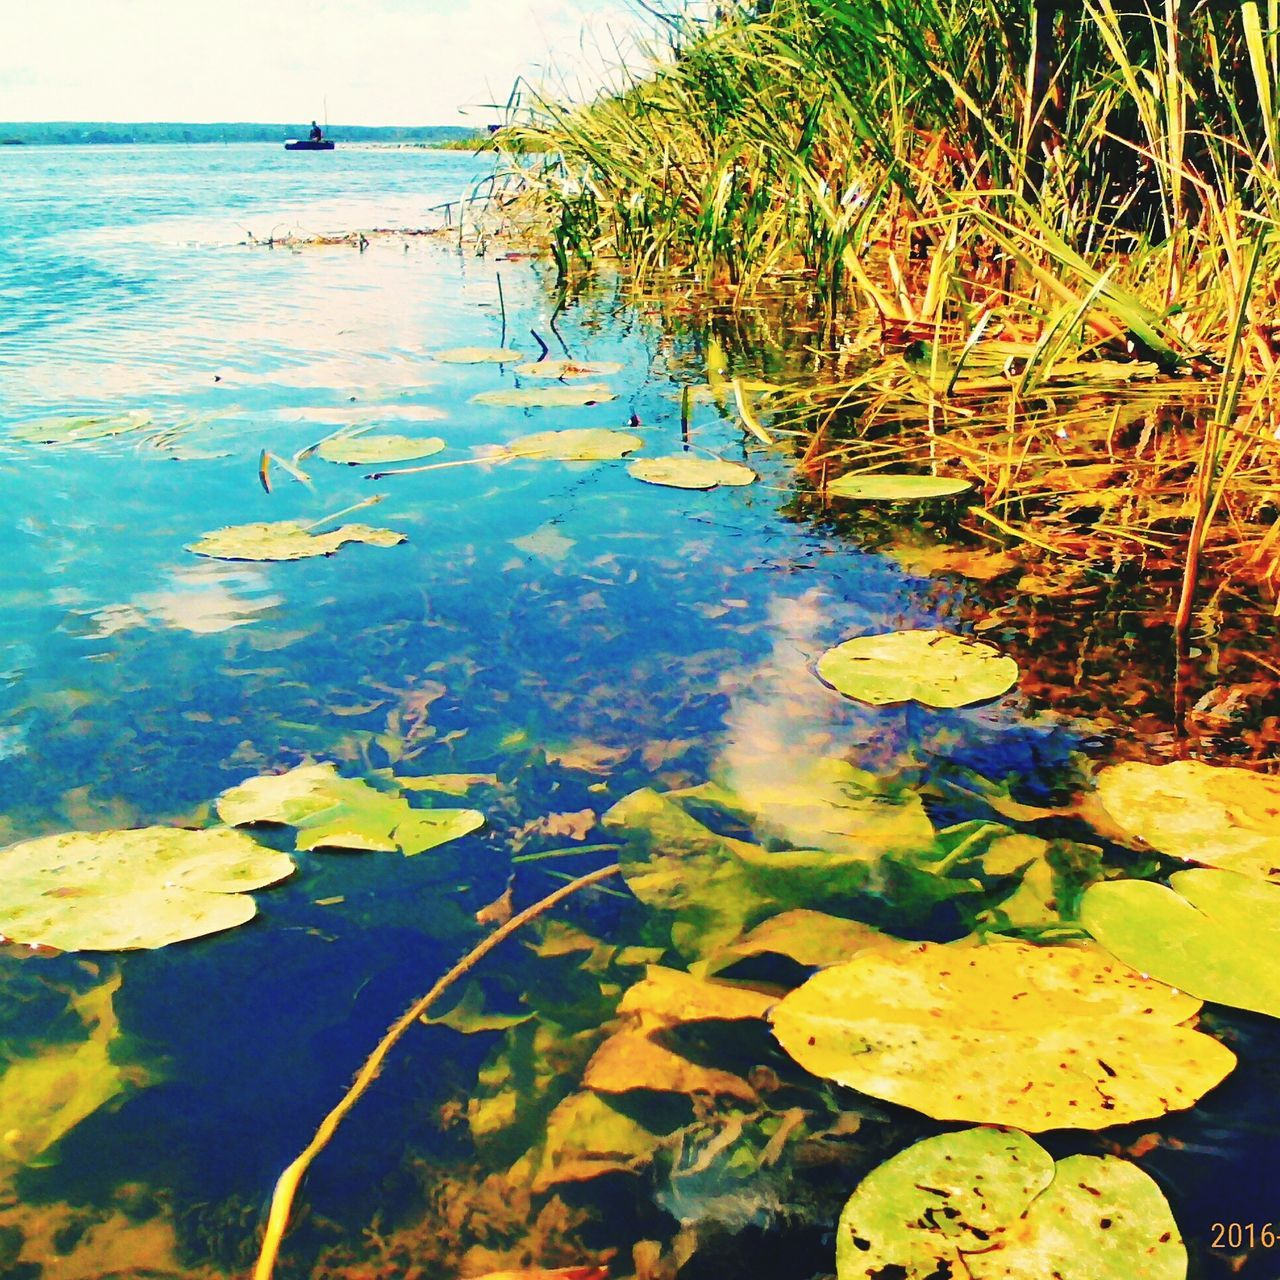 water, nature, floating on water, leaf, beauty in nature, lily pad, tranquility, outdoors, water lily, reflection, day, lake, floating, waterfront, no people, standing water, tranquil scene, water plant, scenics, growth, plant, lotus water lily, close-up